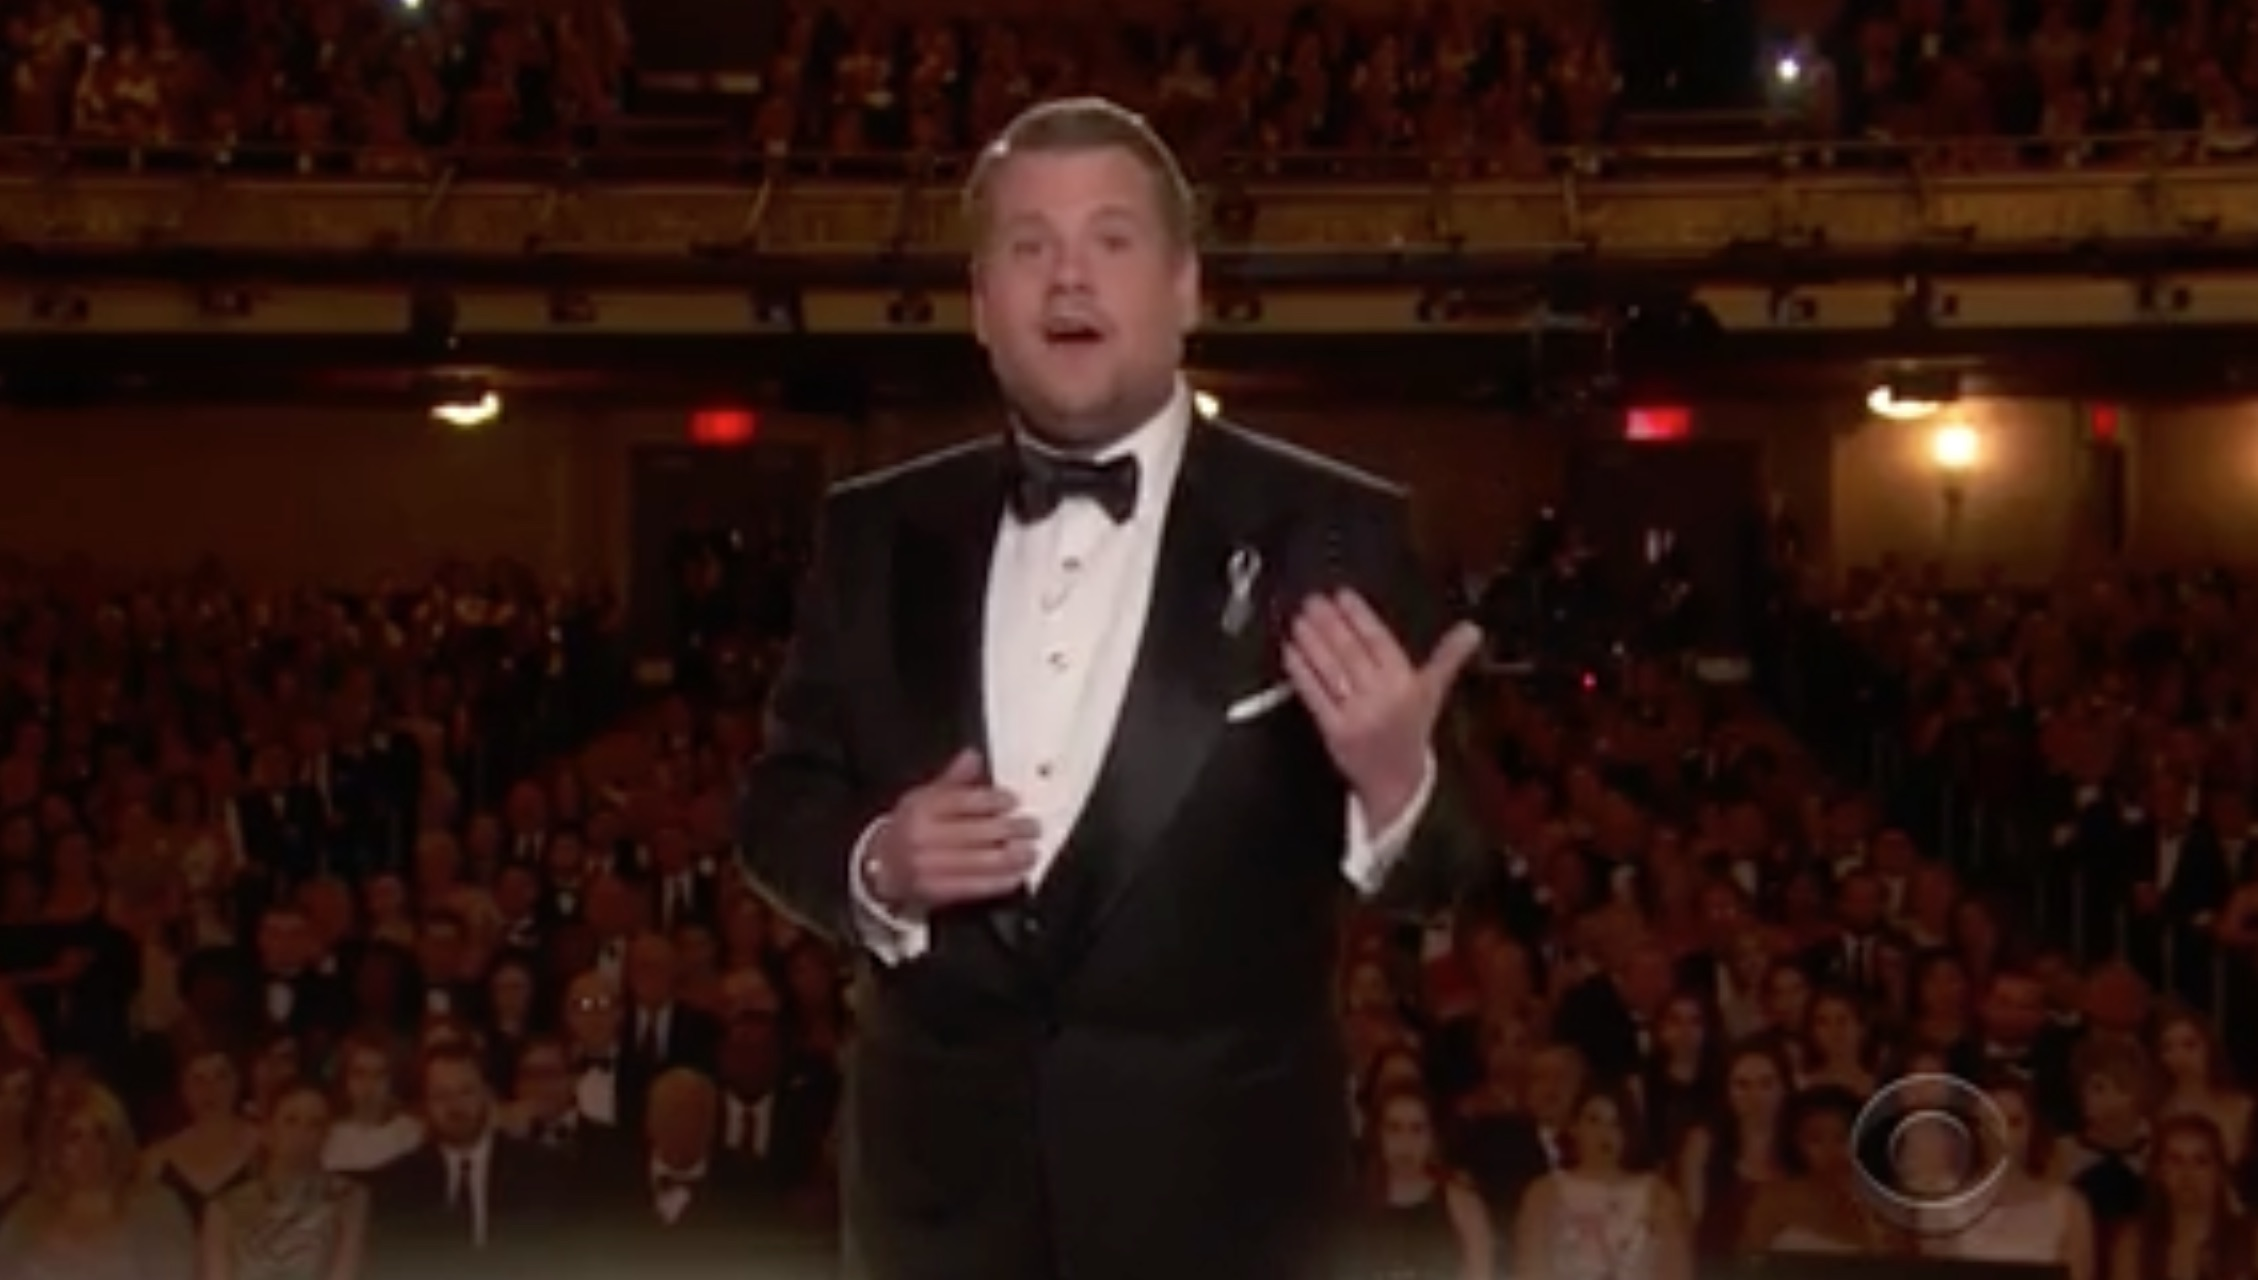 Watch James Corden's beautiful tribute to the victims of the Orlando shooting